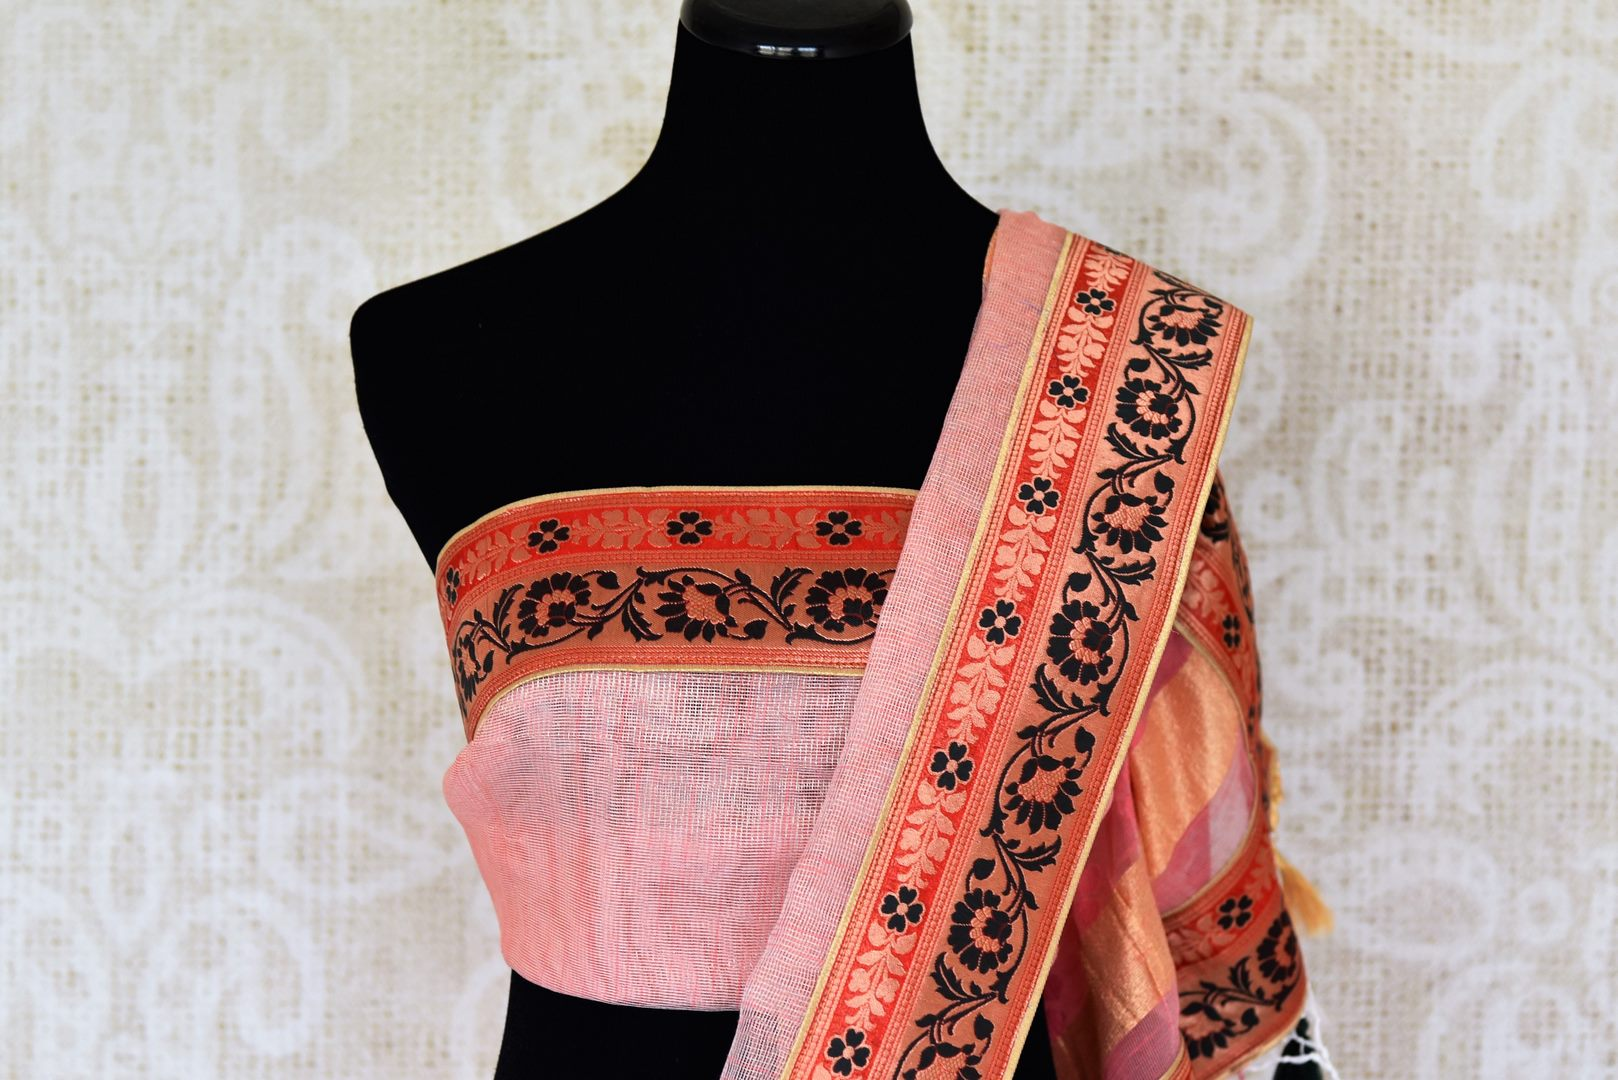 Shop pink jute sari online in USA with Banarasi border. Elevate your traditional style with exquisite Indian designer sarees from Pure Elegance Indian clothing store in USA. Explore a range of stunning silk sarees, embroidered sarees, wedding sarees especially from India for women in USA.-blouse pallu